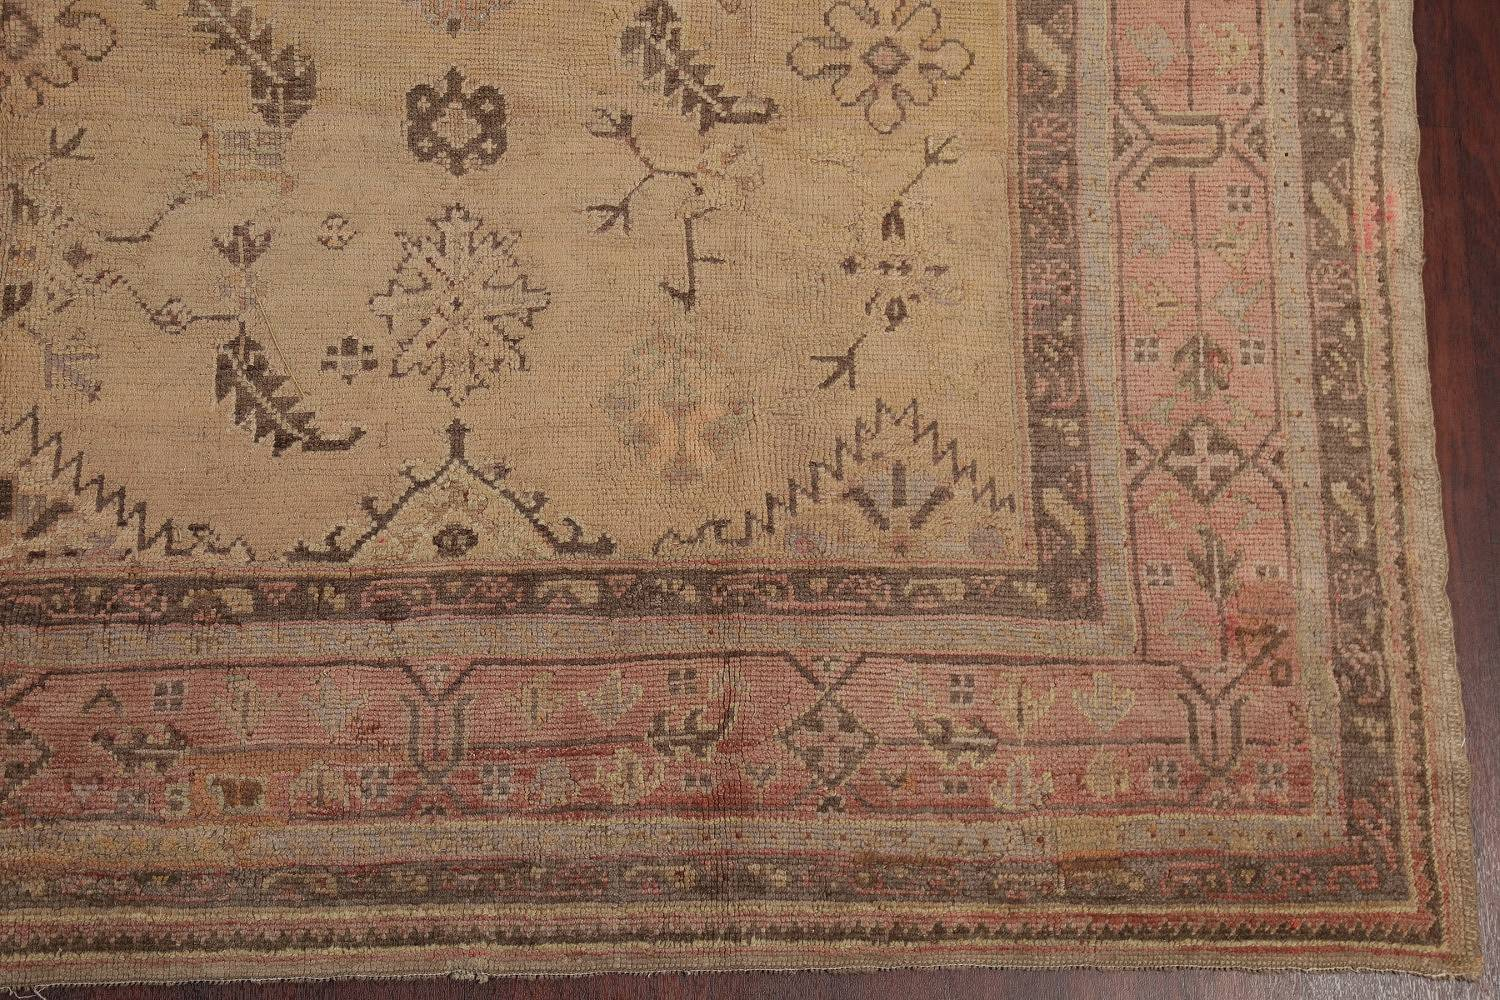 Pre-1900 Antique All-Over Geometric Muted Color Oushak Turkish Area Rug 10x13